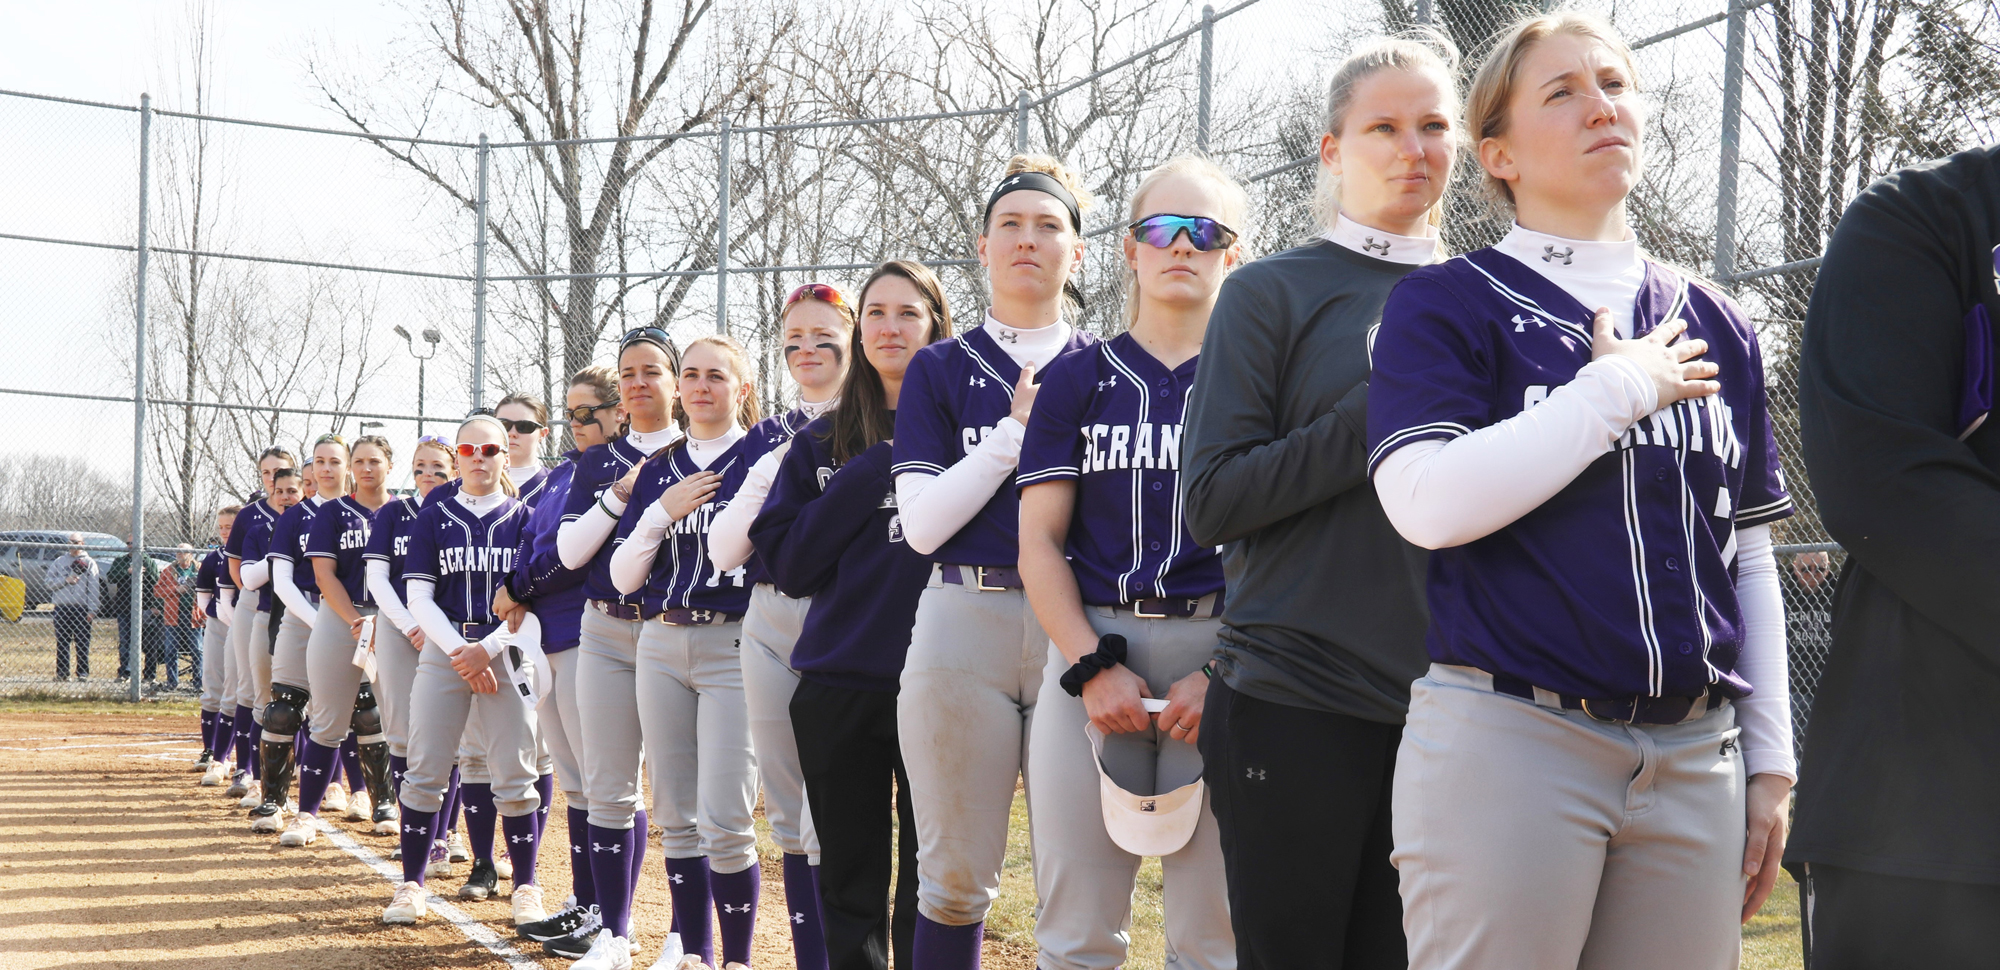 The University of Scranton softball team will play in the NCAA Tournament for the first time since 1983 on Friday, as they take on host and top-ranked Virginia Wesleyan at 4:30 p.m. © Photo by Timothy R. Dougherty / doubleeaglephotography.com